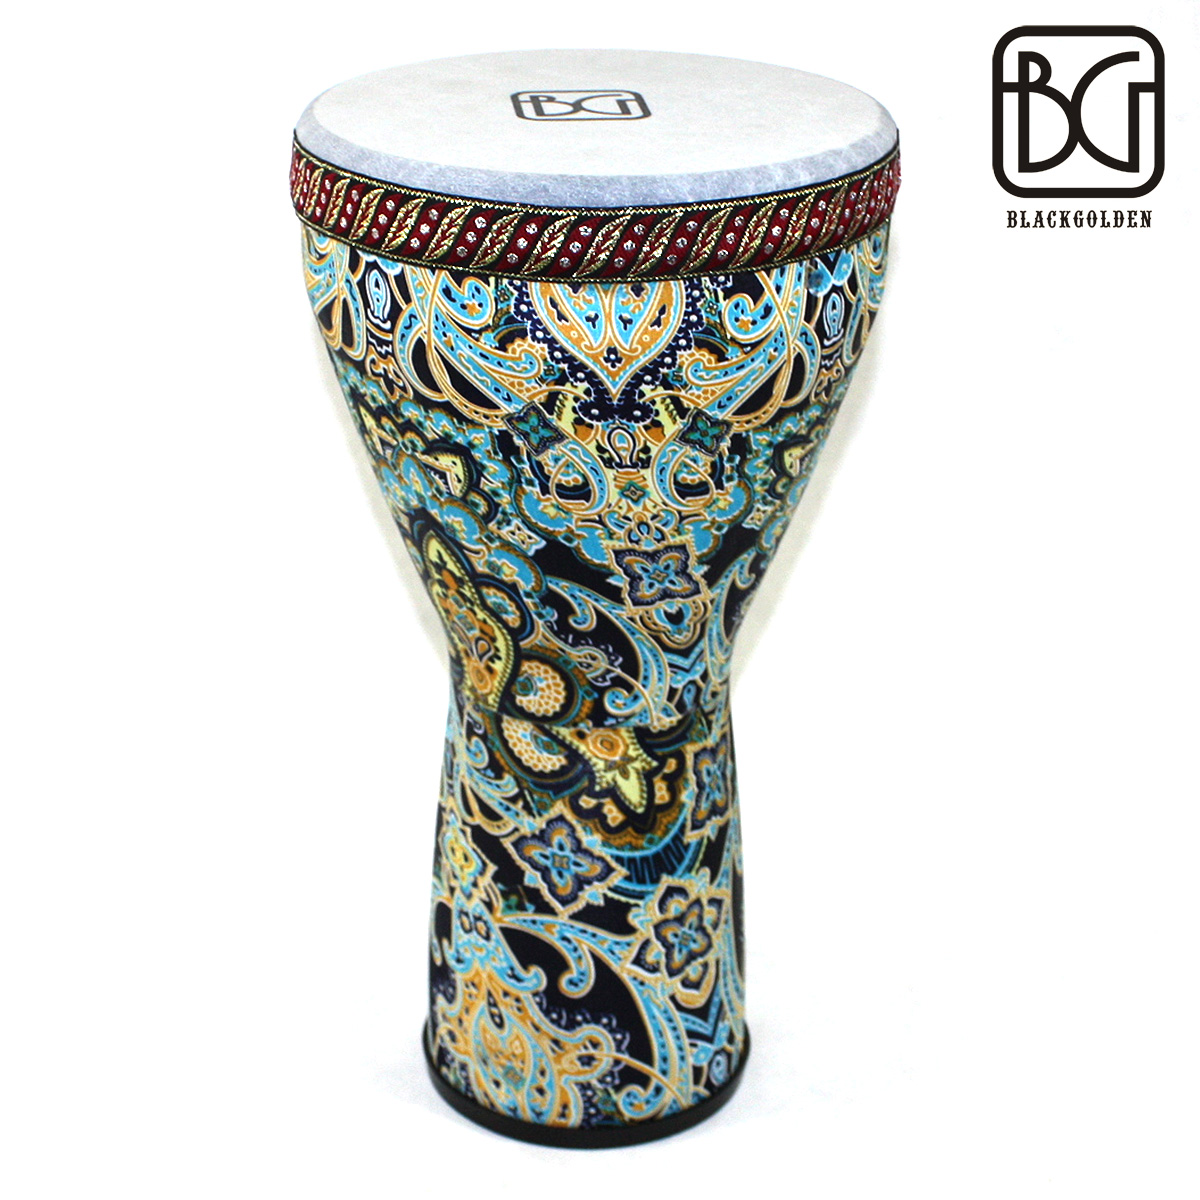 Black golden BG 8-inch African drum hand drum Orff early education package